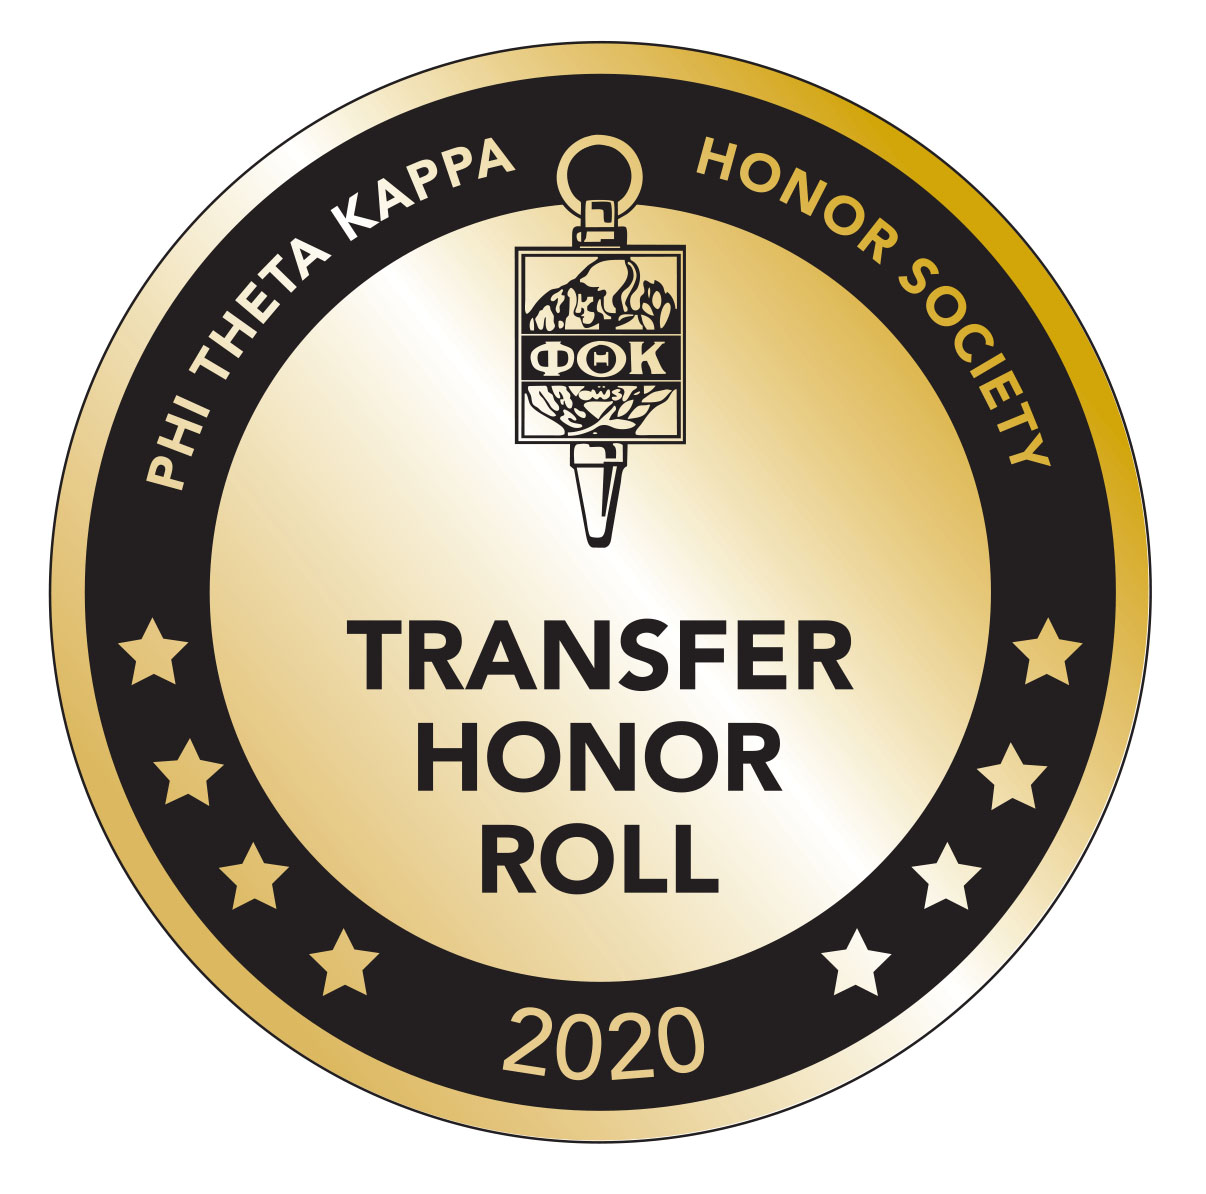 Transfer Honor Roll 2020 Badge